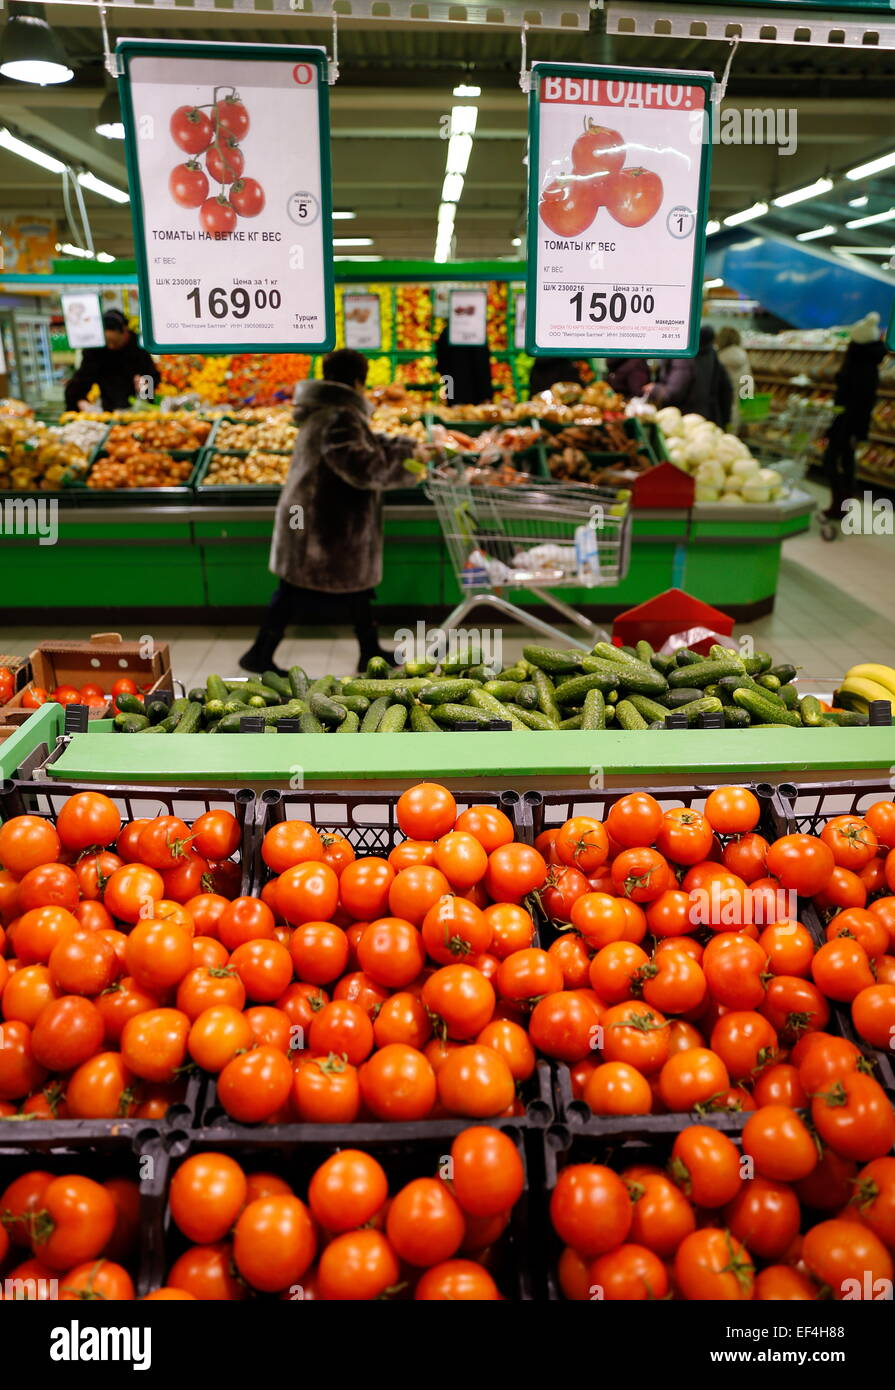 KALININGRAD, RUSSIA  JANUARY 26, 2015  Vegetables for sale at a